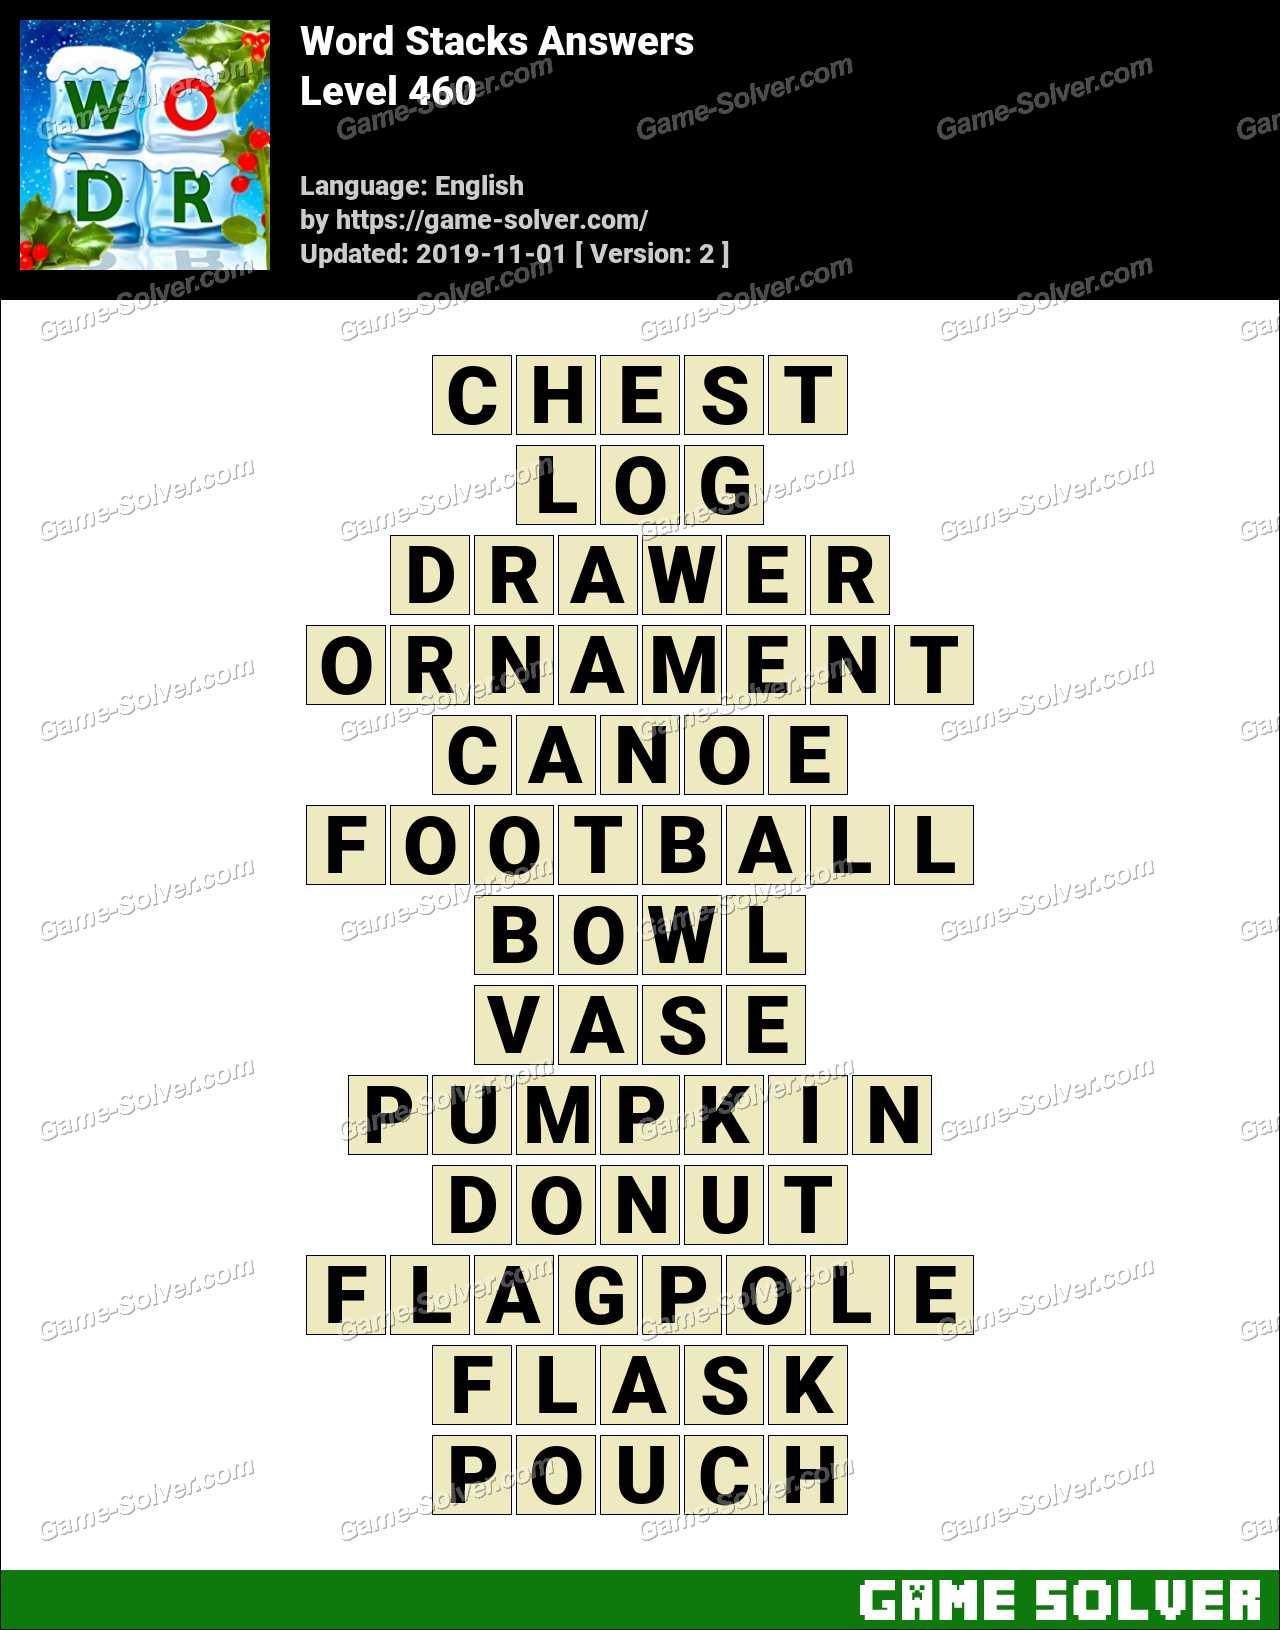 Word Stacks Level 460 Answers